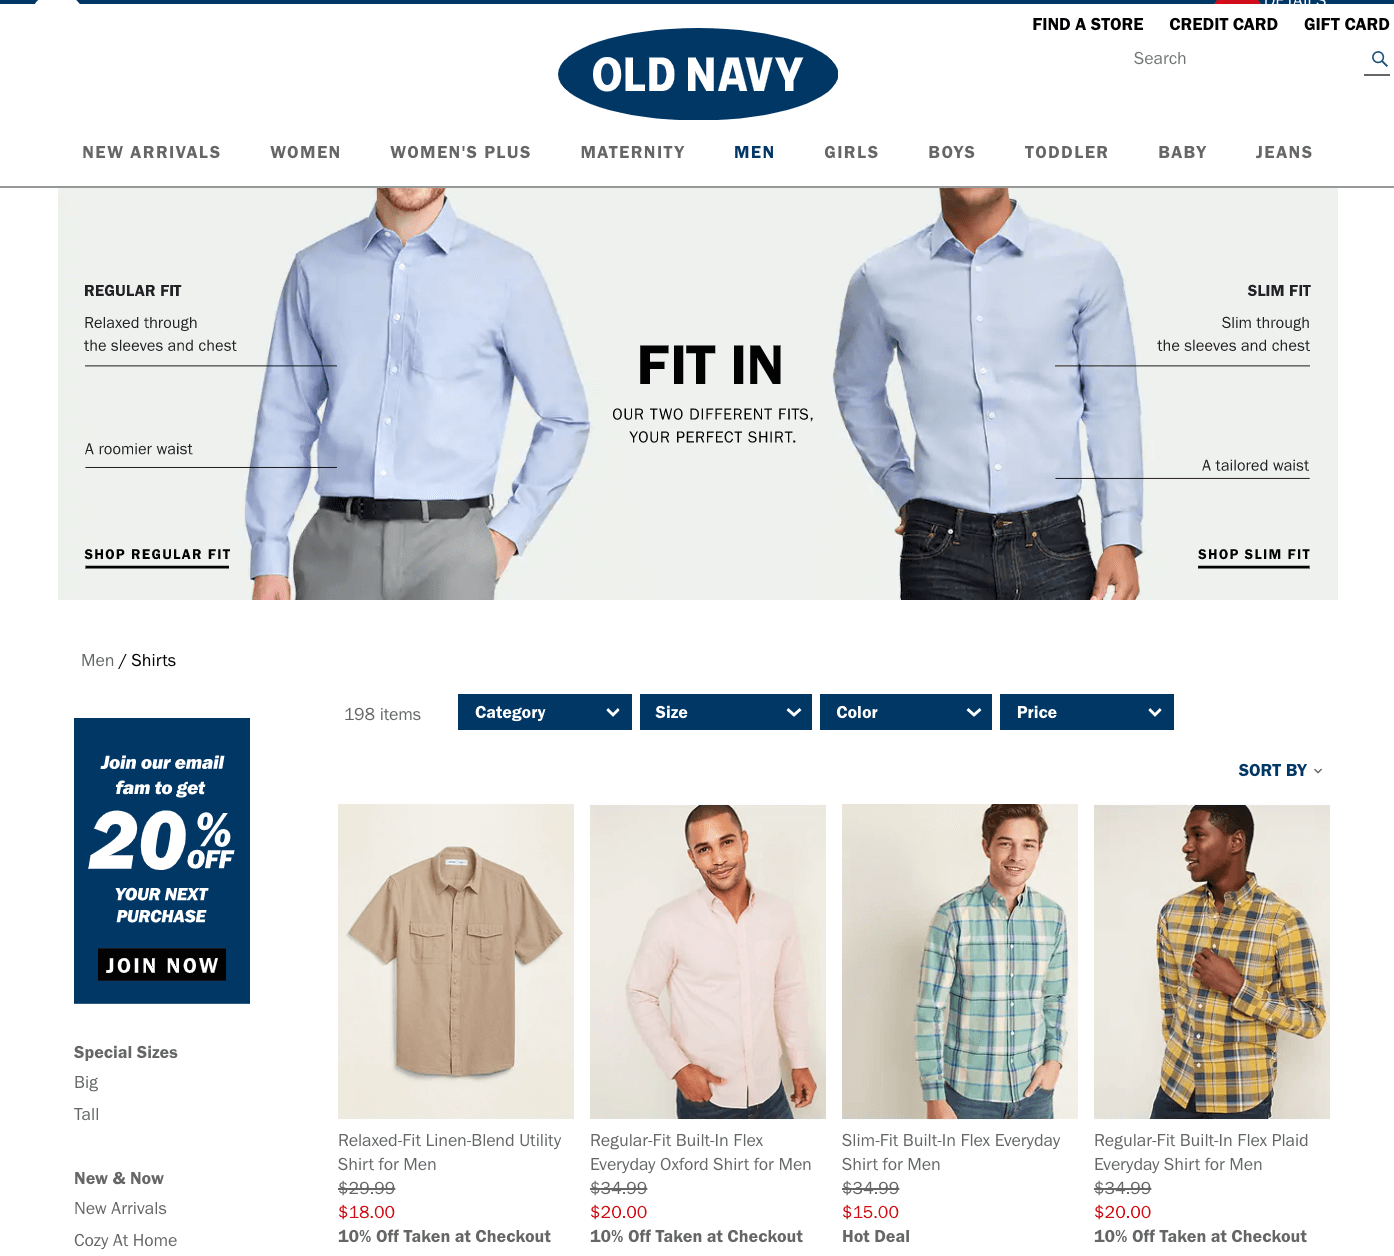 old-navy-collection-image-description